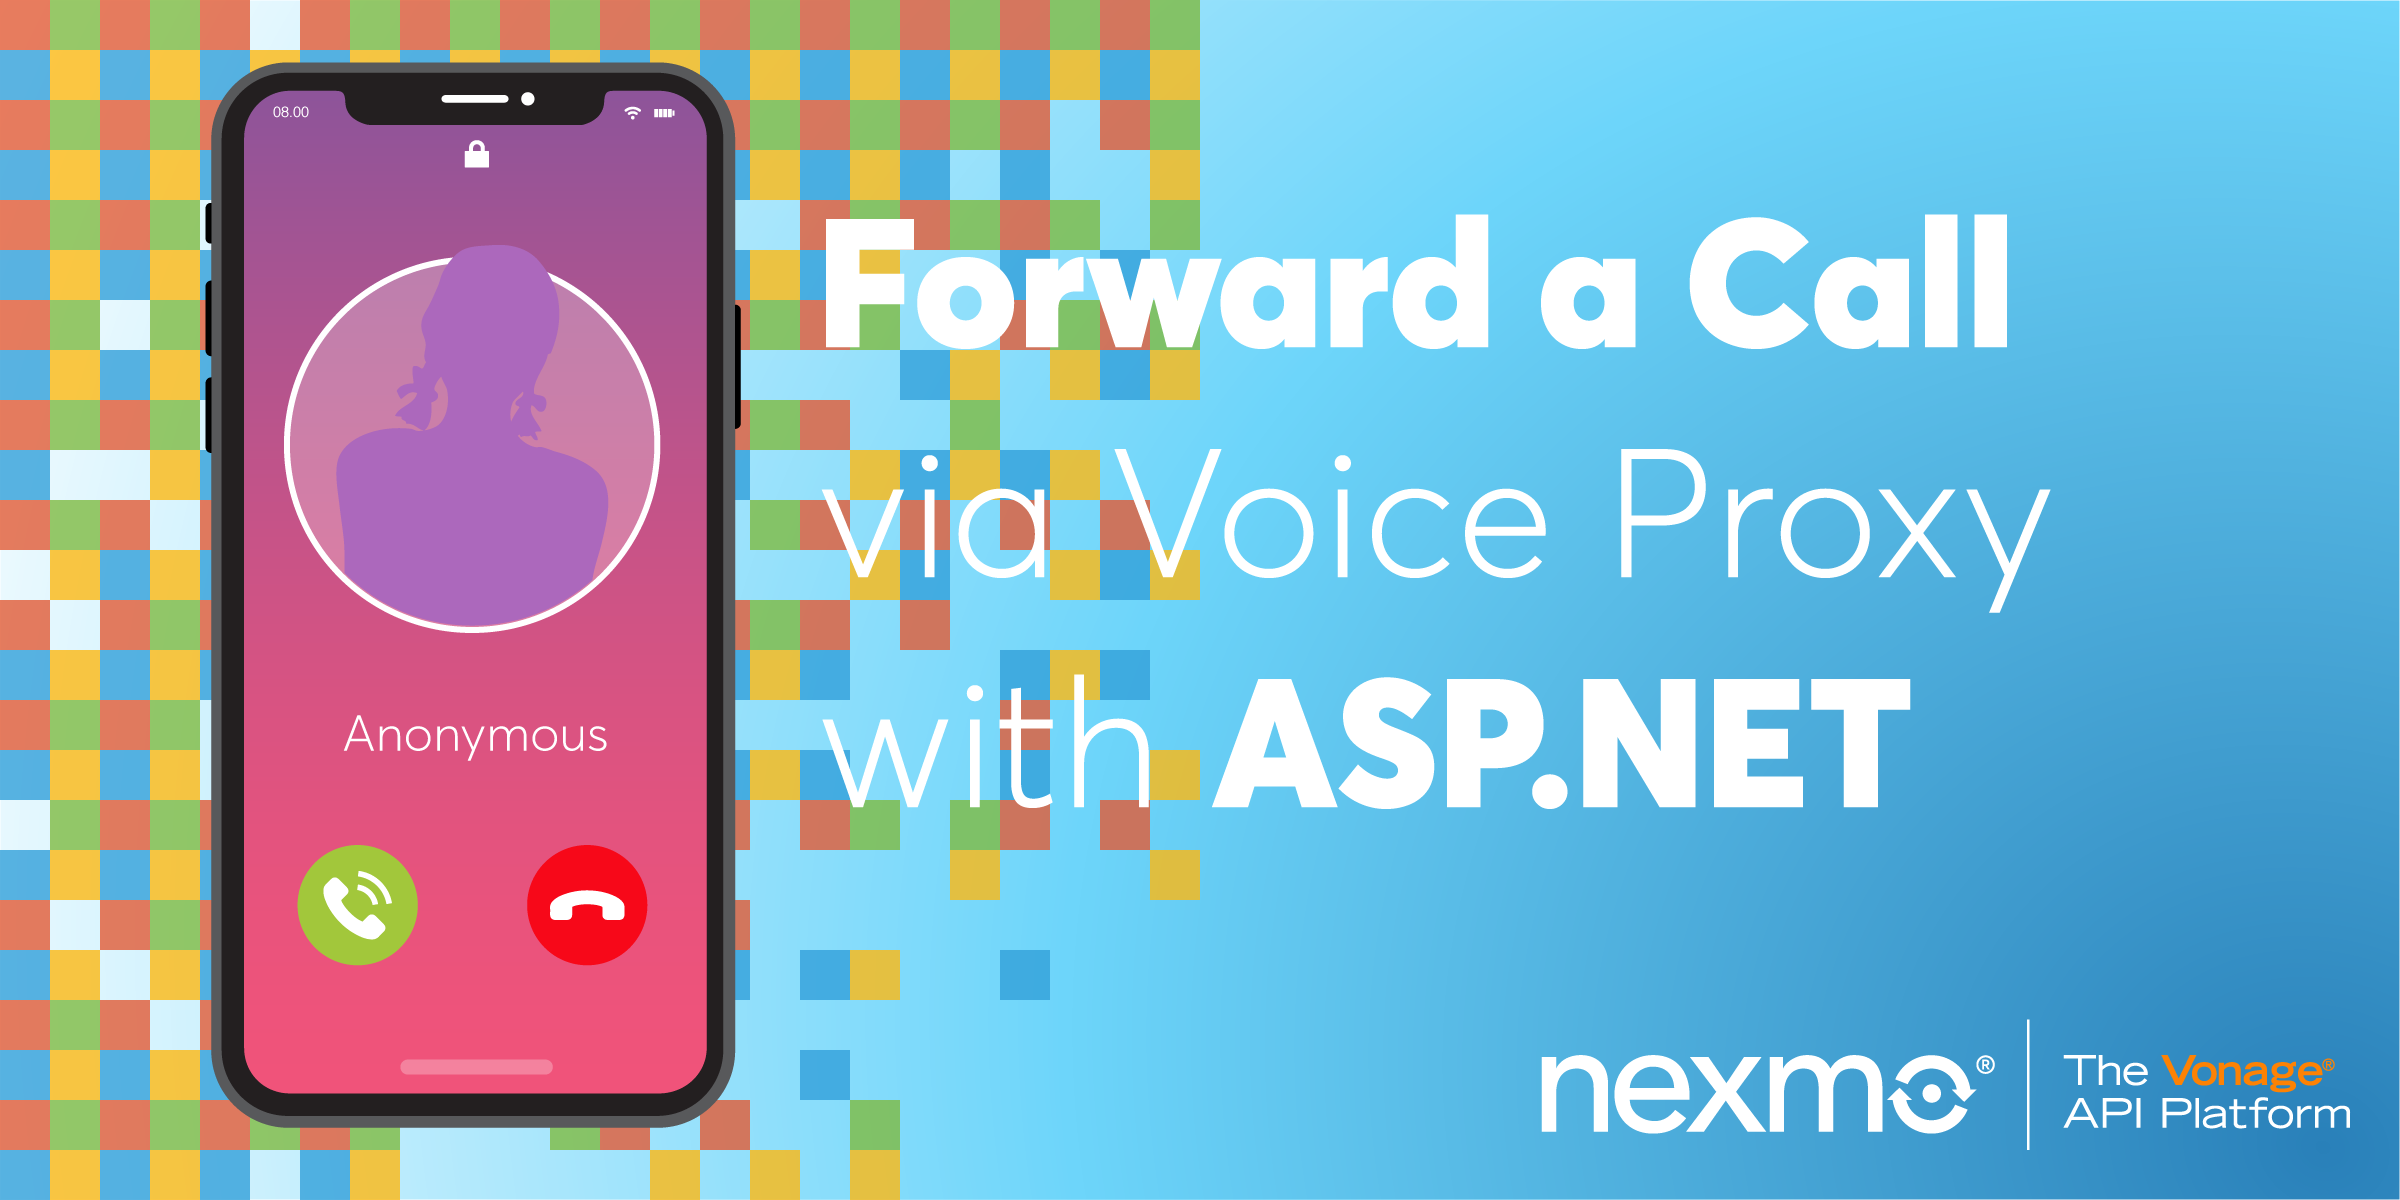 Forward a Call via Voice Proxy with ASP.NET Core